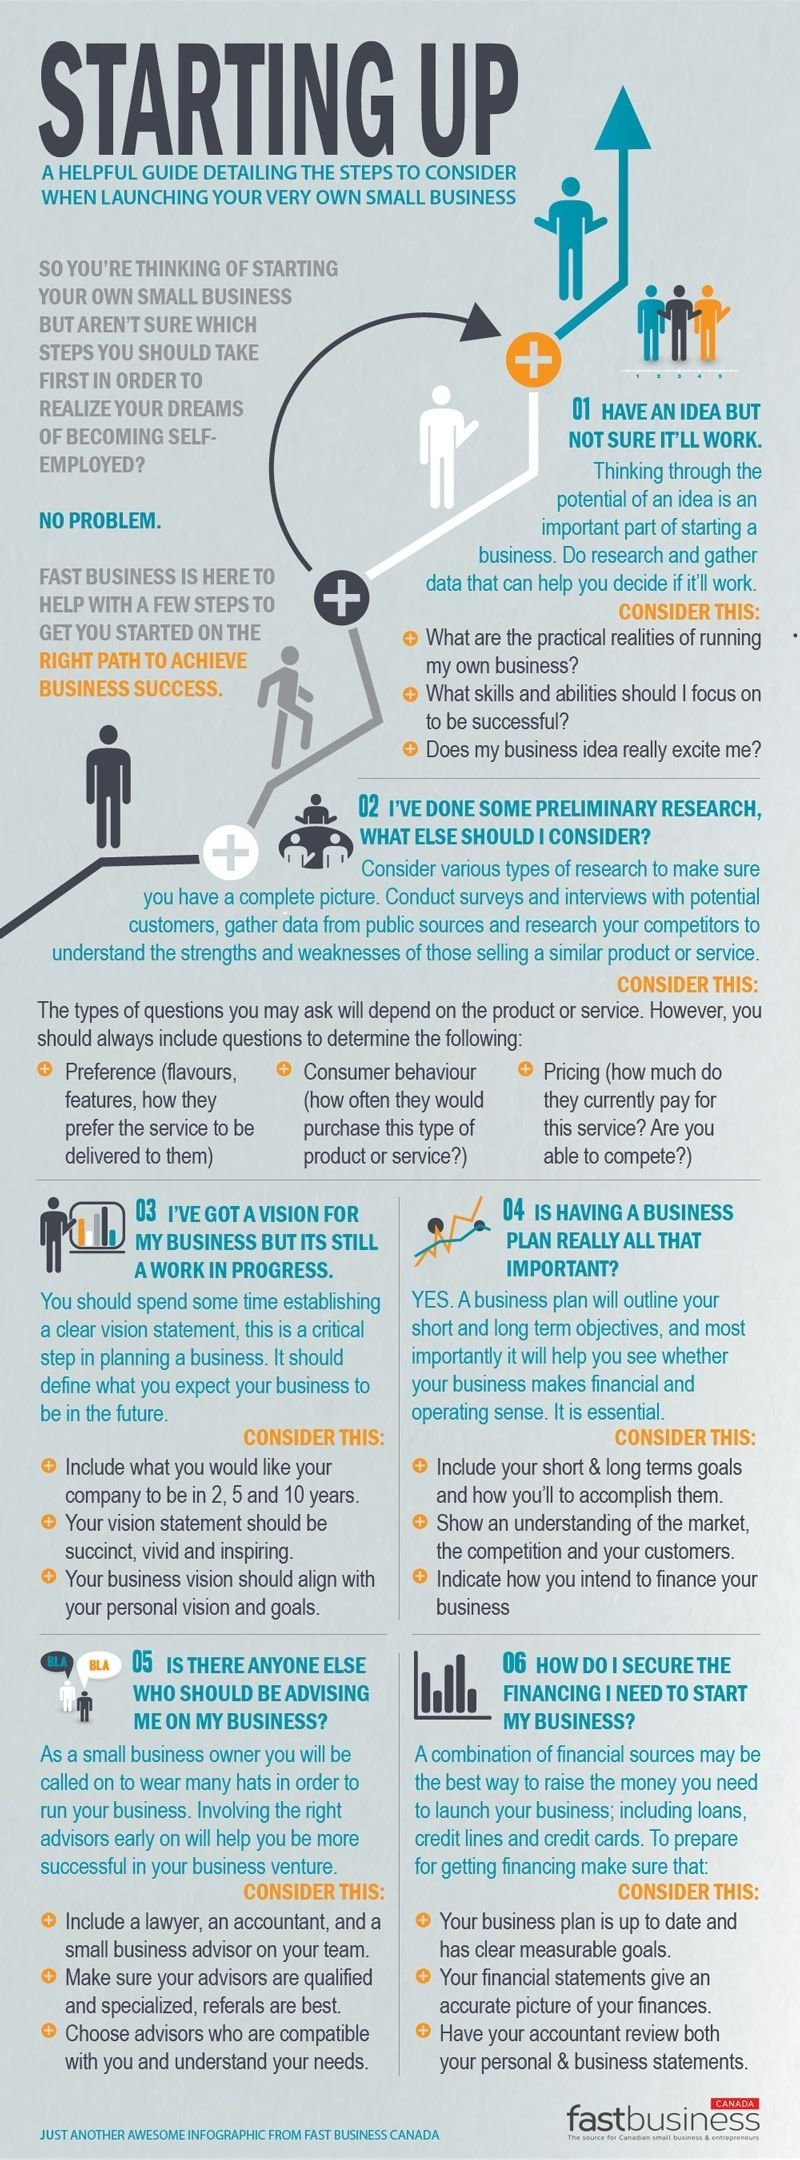 10 Lovely Starting My Own Business Ideas starting up quick guide to starting a small business infographic 1 2020